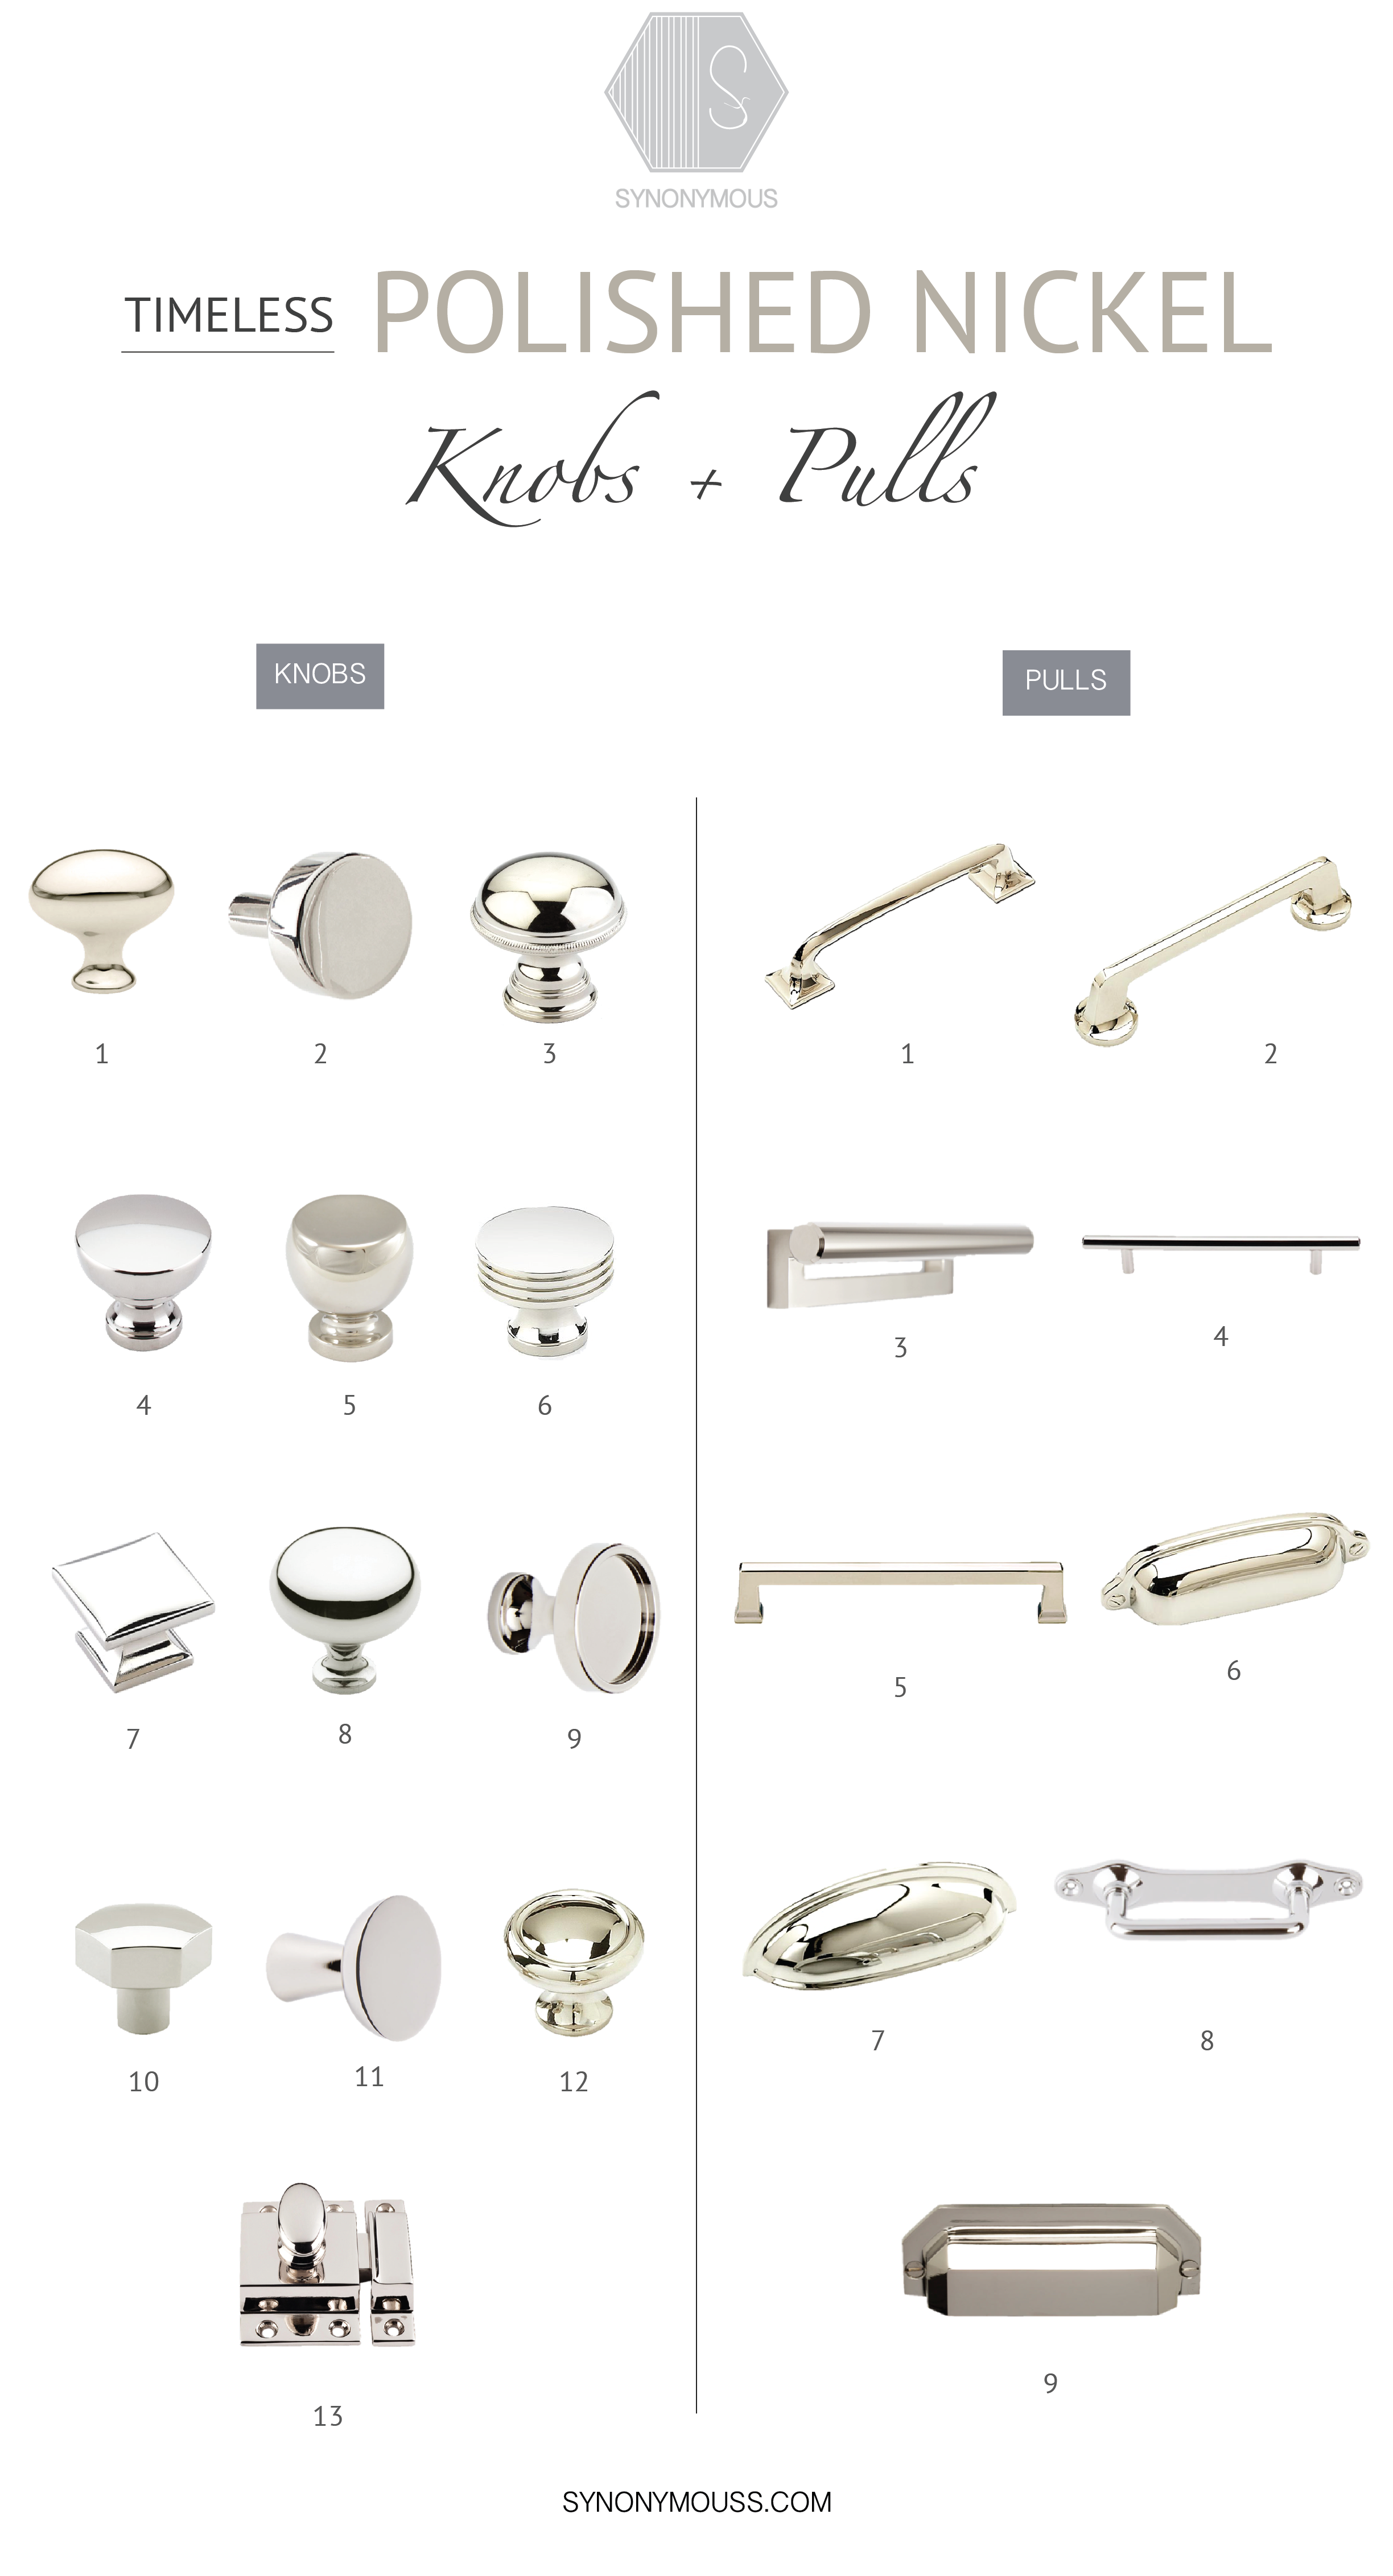 Timeless Polished Nickel Knobs and Pulls - Roundup - Synonymouss.com - Synonymous